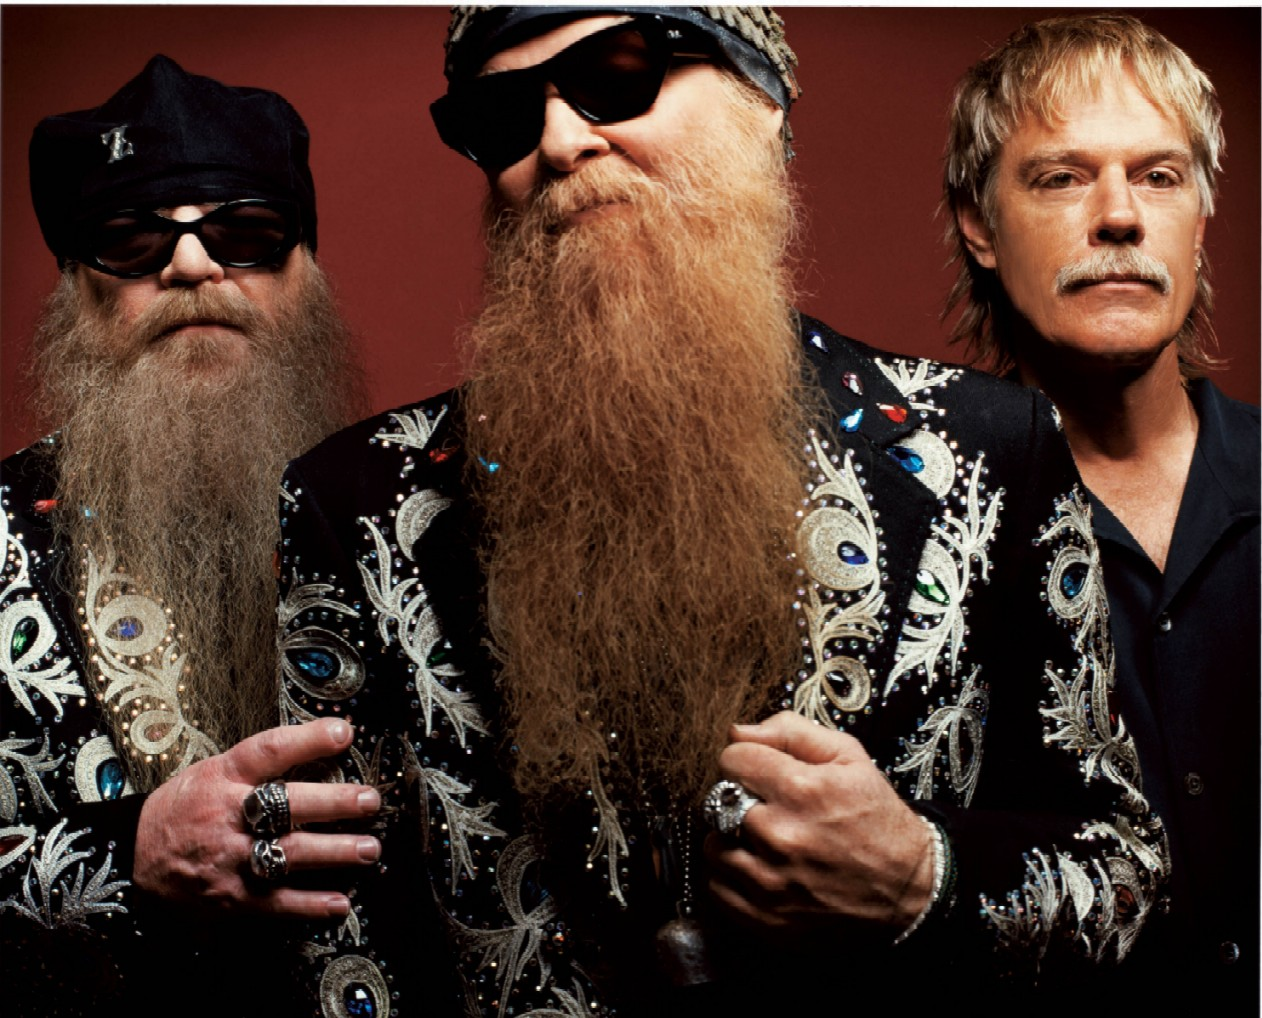 Best images about ZZ Top on Pinterest  Bar, Beards and Poster 1262x1018